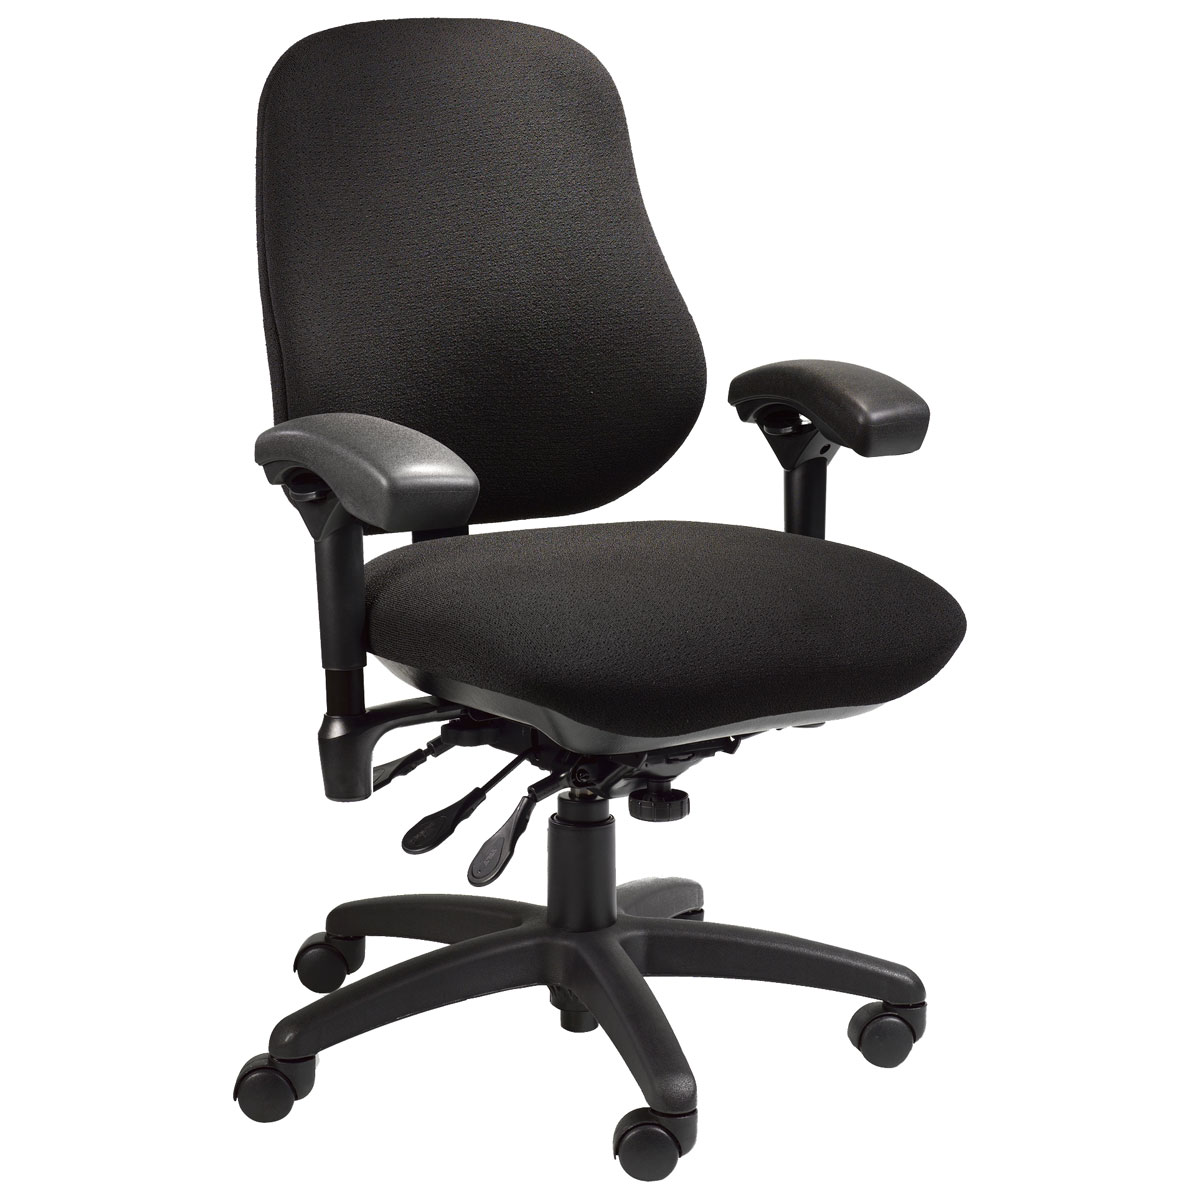 BodyBilt 25093509 Extra Tall Stretch Chair  Shop